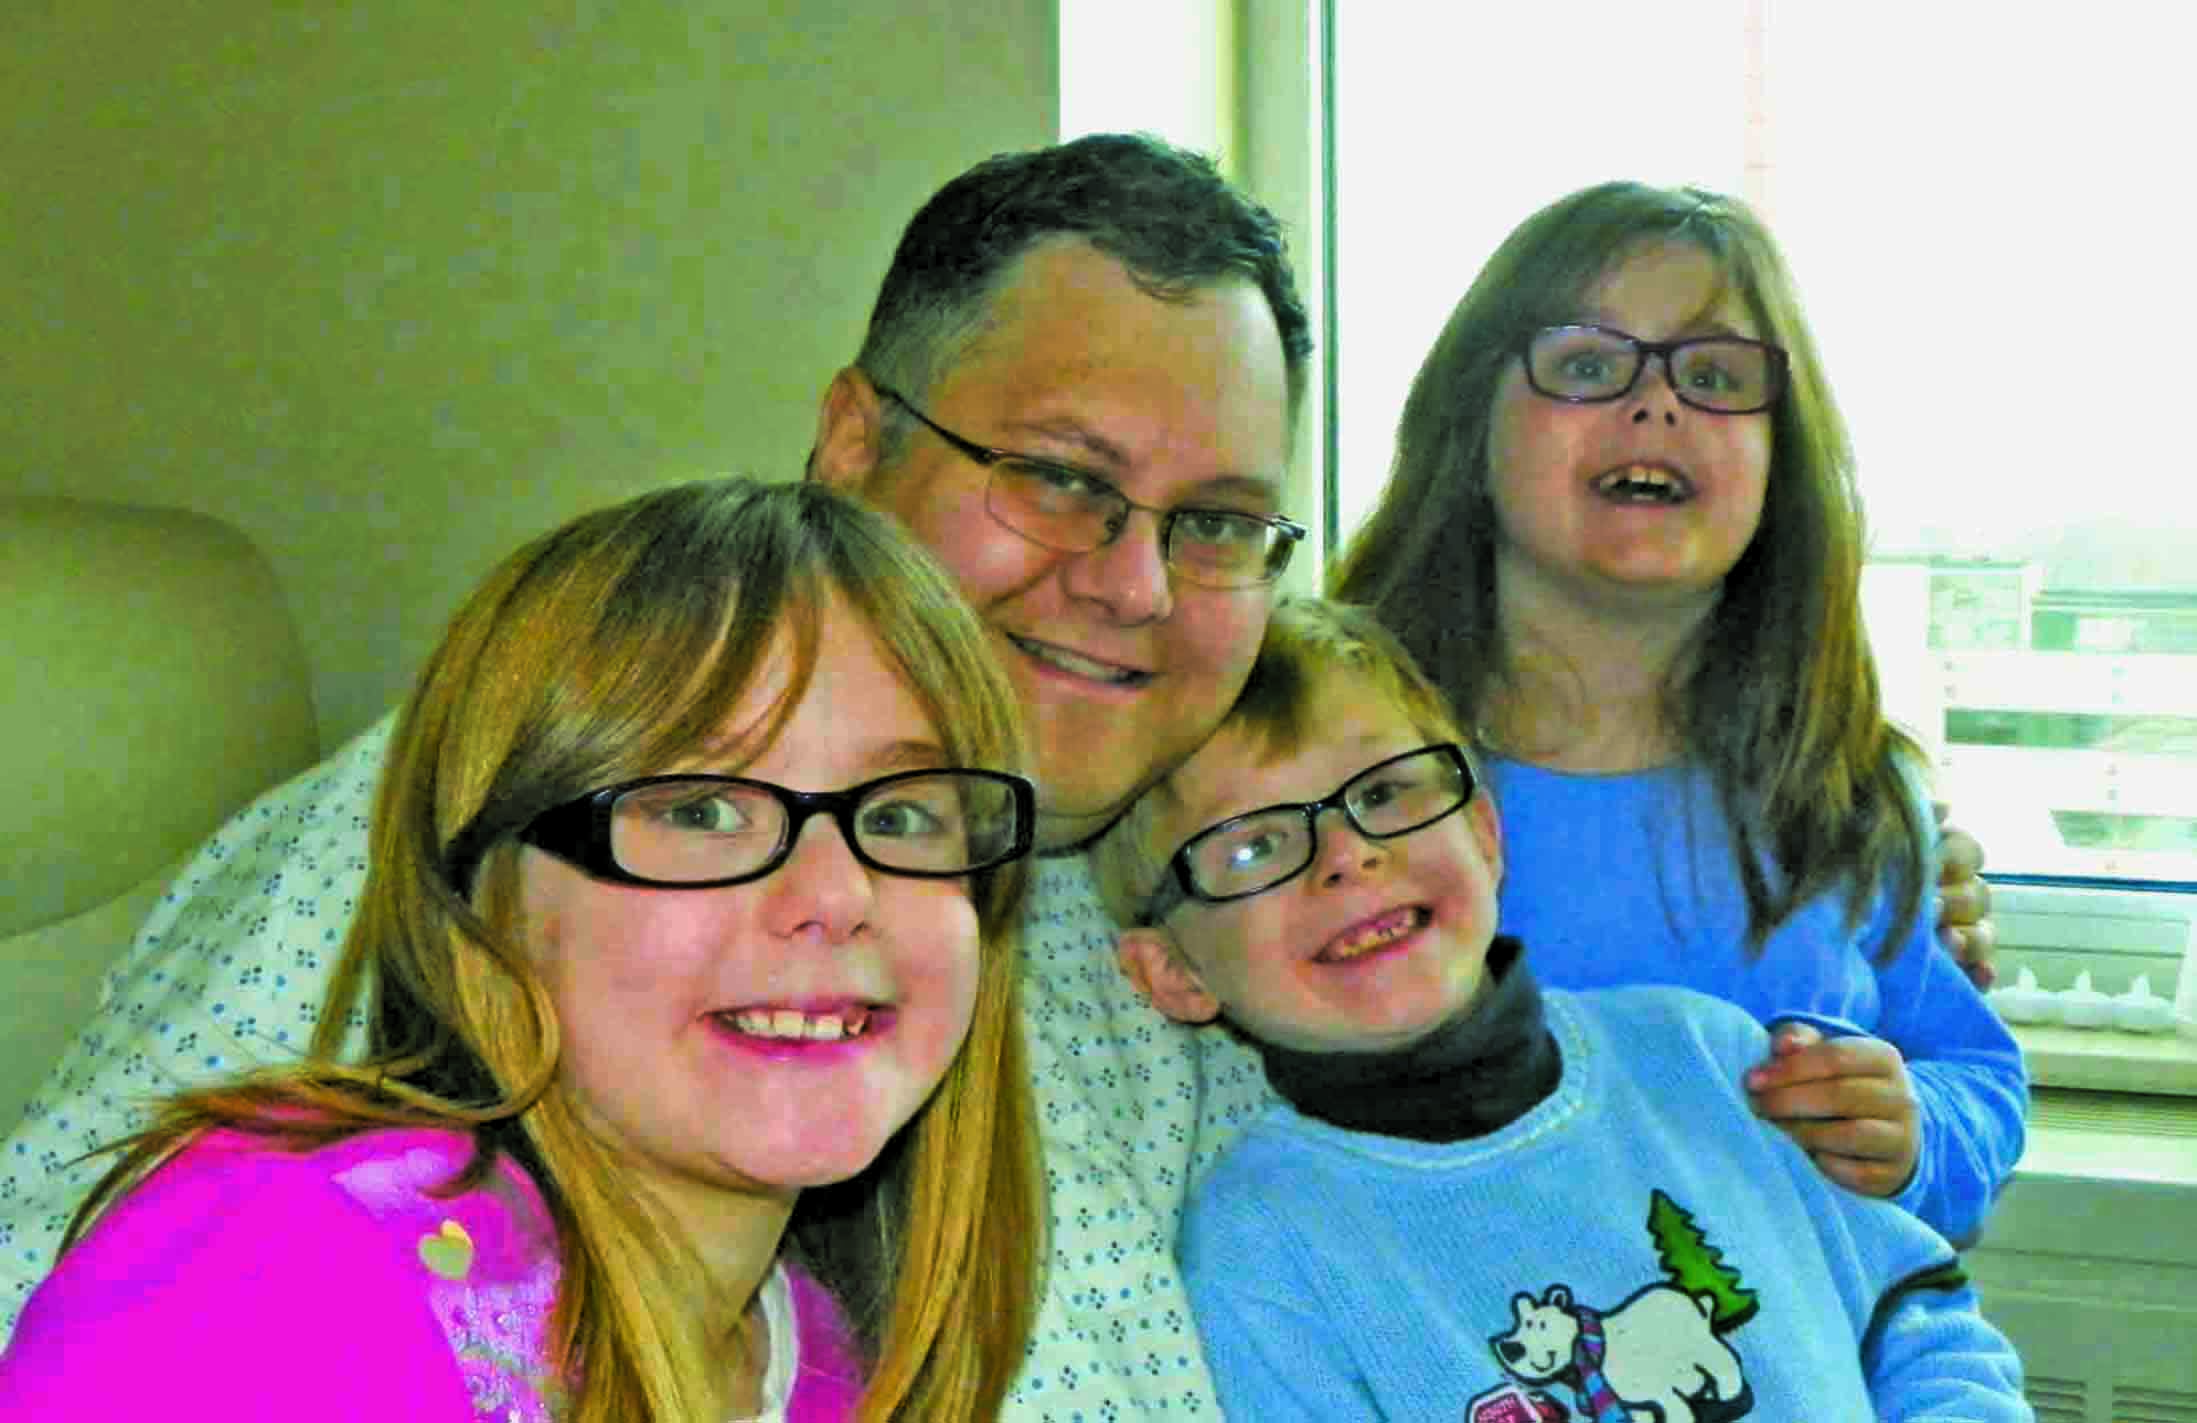 The triplets join Harlan during one of his recent hospital stays. The Steuer family has had to learn a lot of frightening new vocabulary words as they navigate Harlan's illness and treatment.